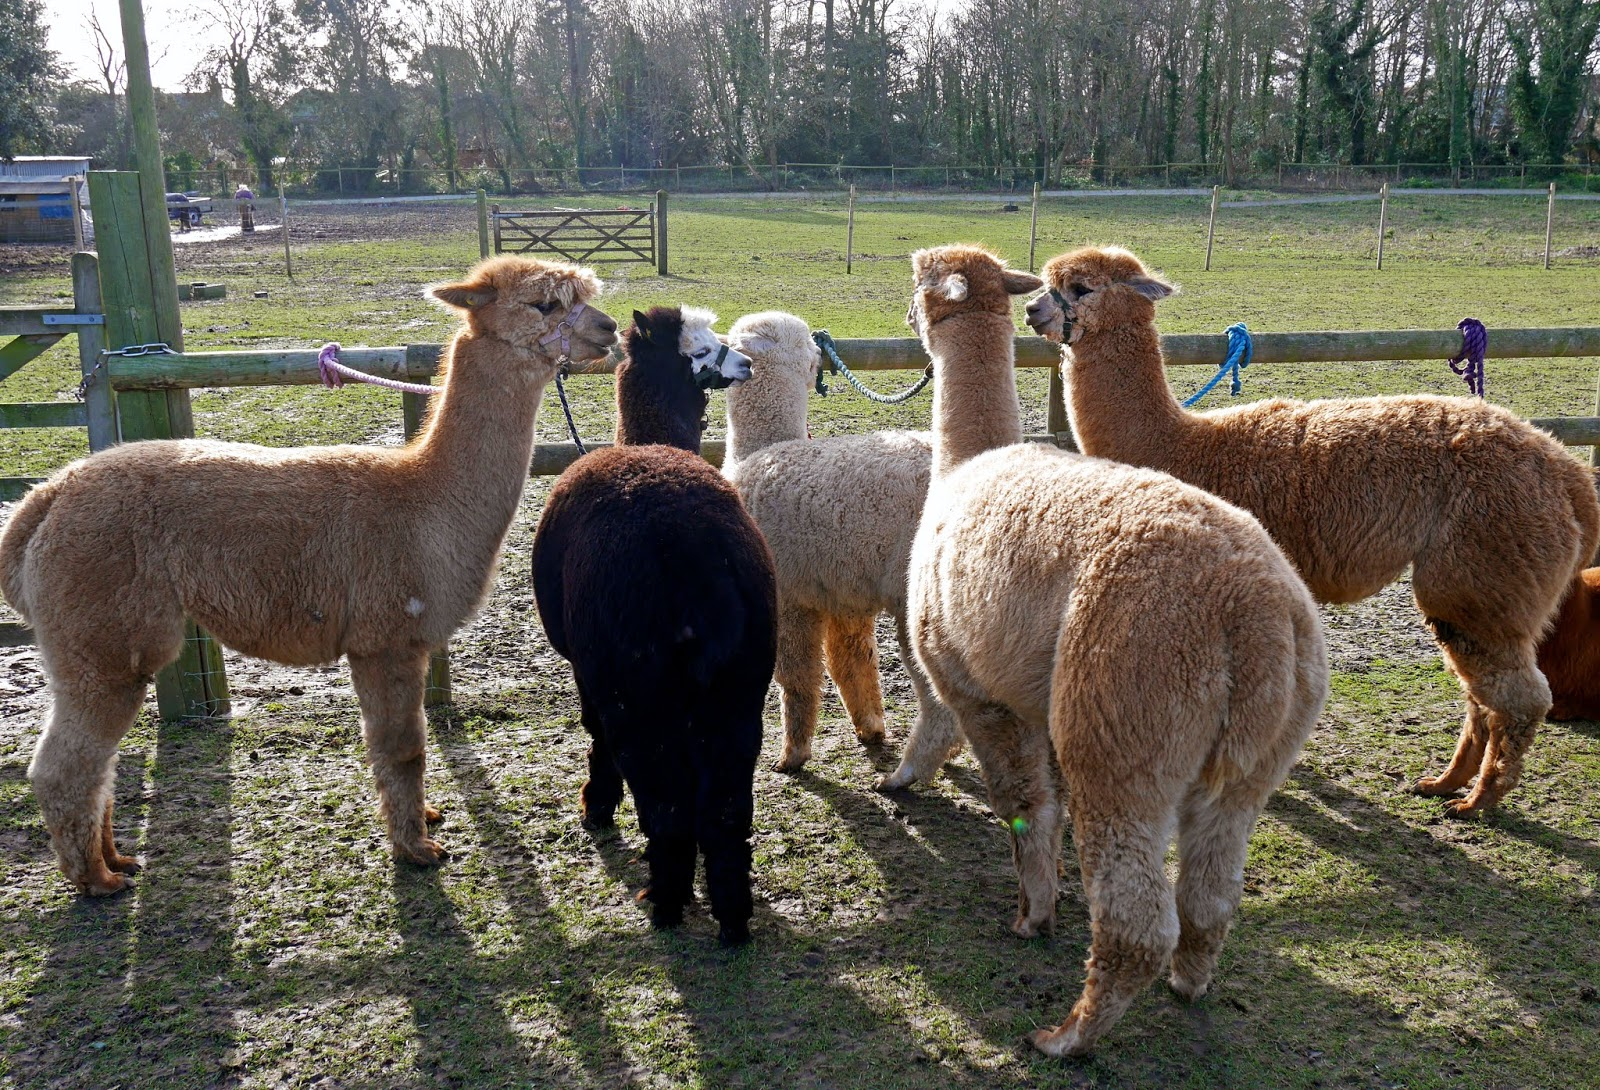 Alpacas at Quex Park in Birchington, Kent